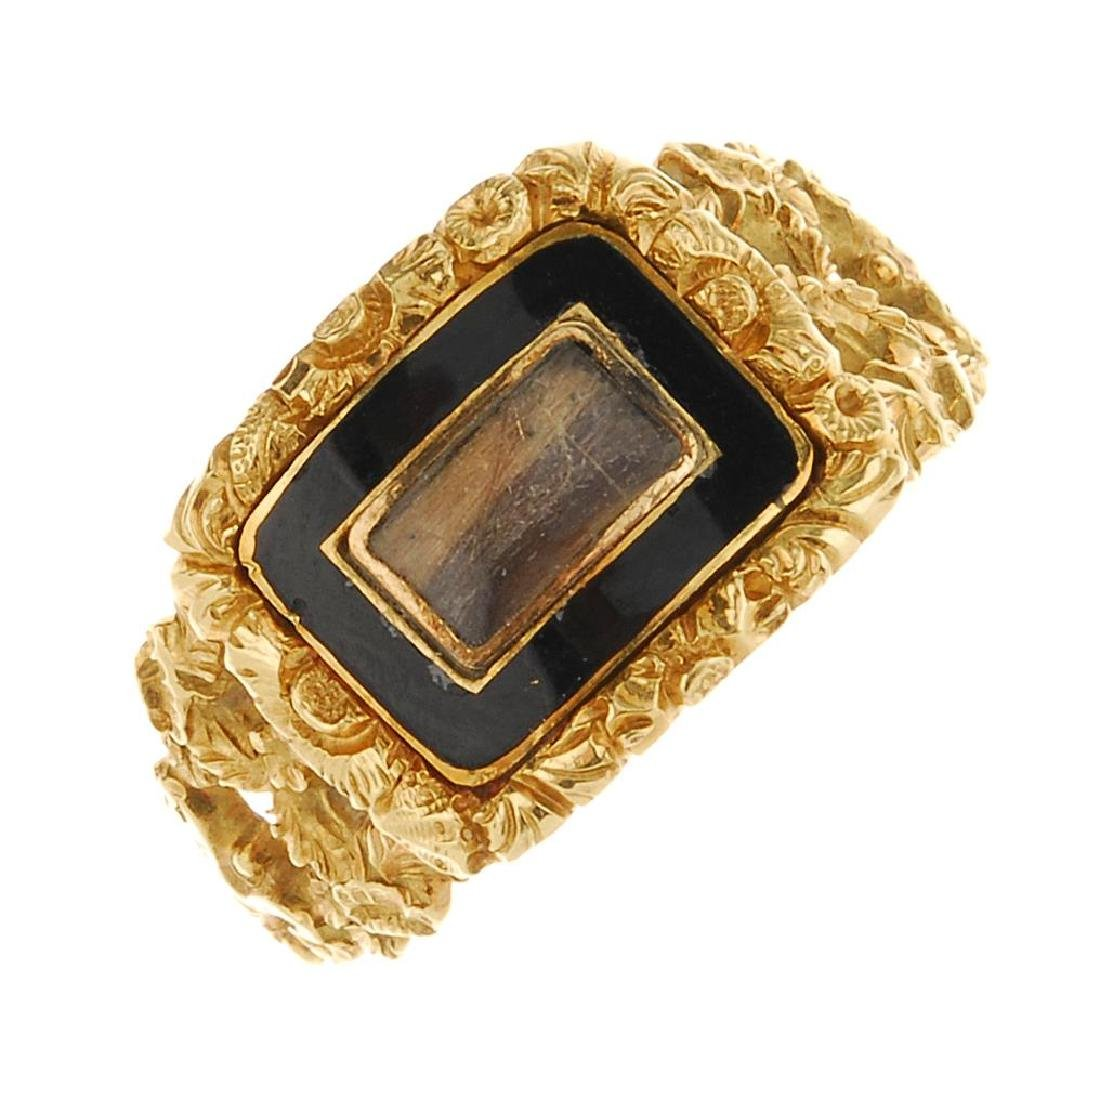 A George IV 18ct gold enamel memorial ring. Designed as